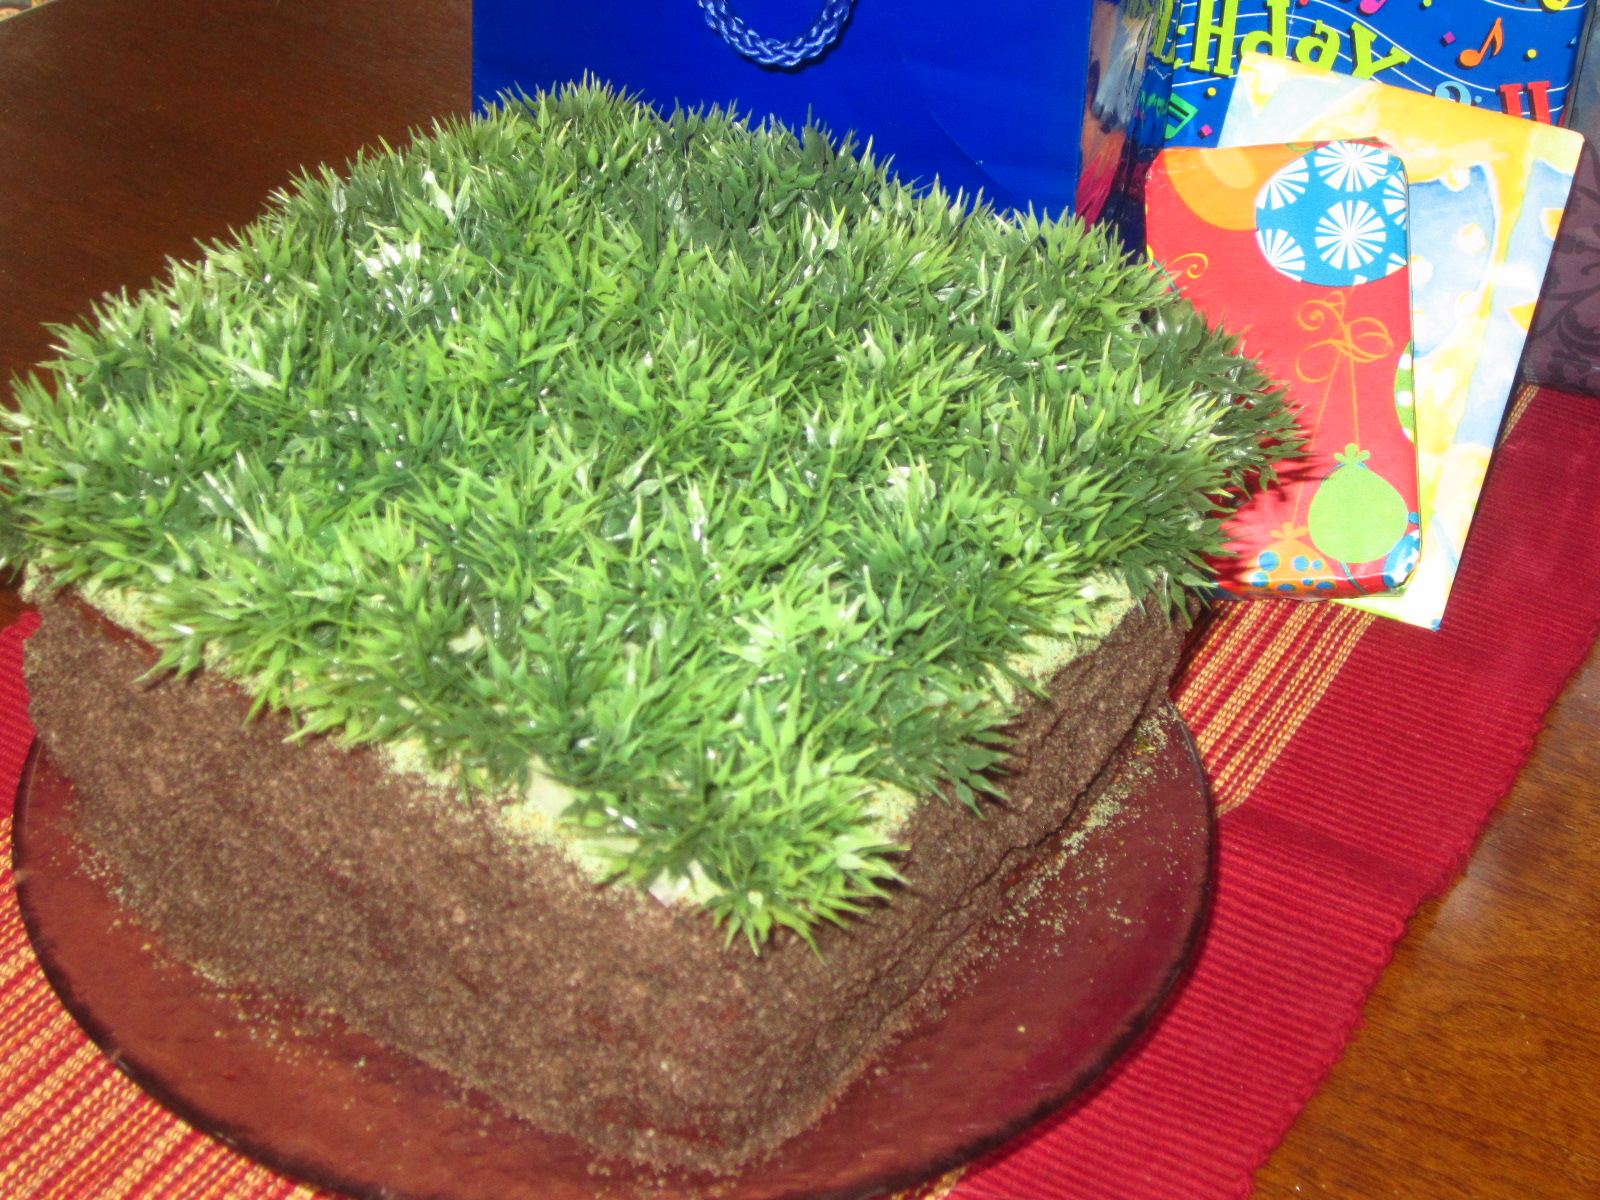 The Curious Pebble Project MineCraft Cake Fit for a TenYear Old